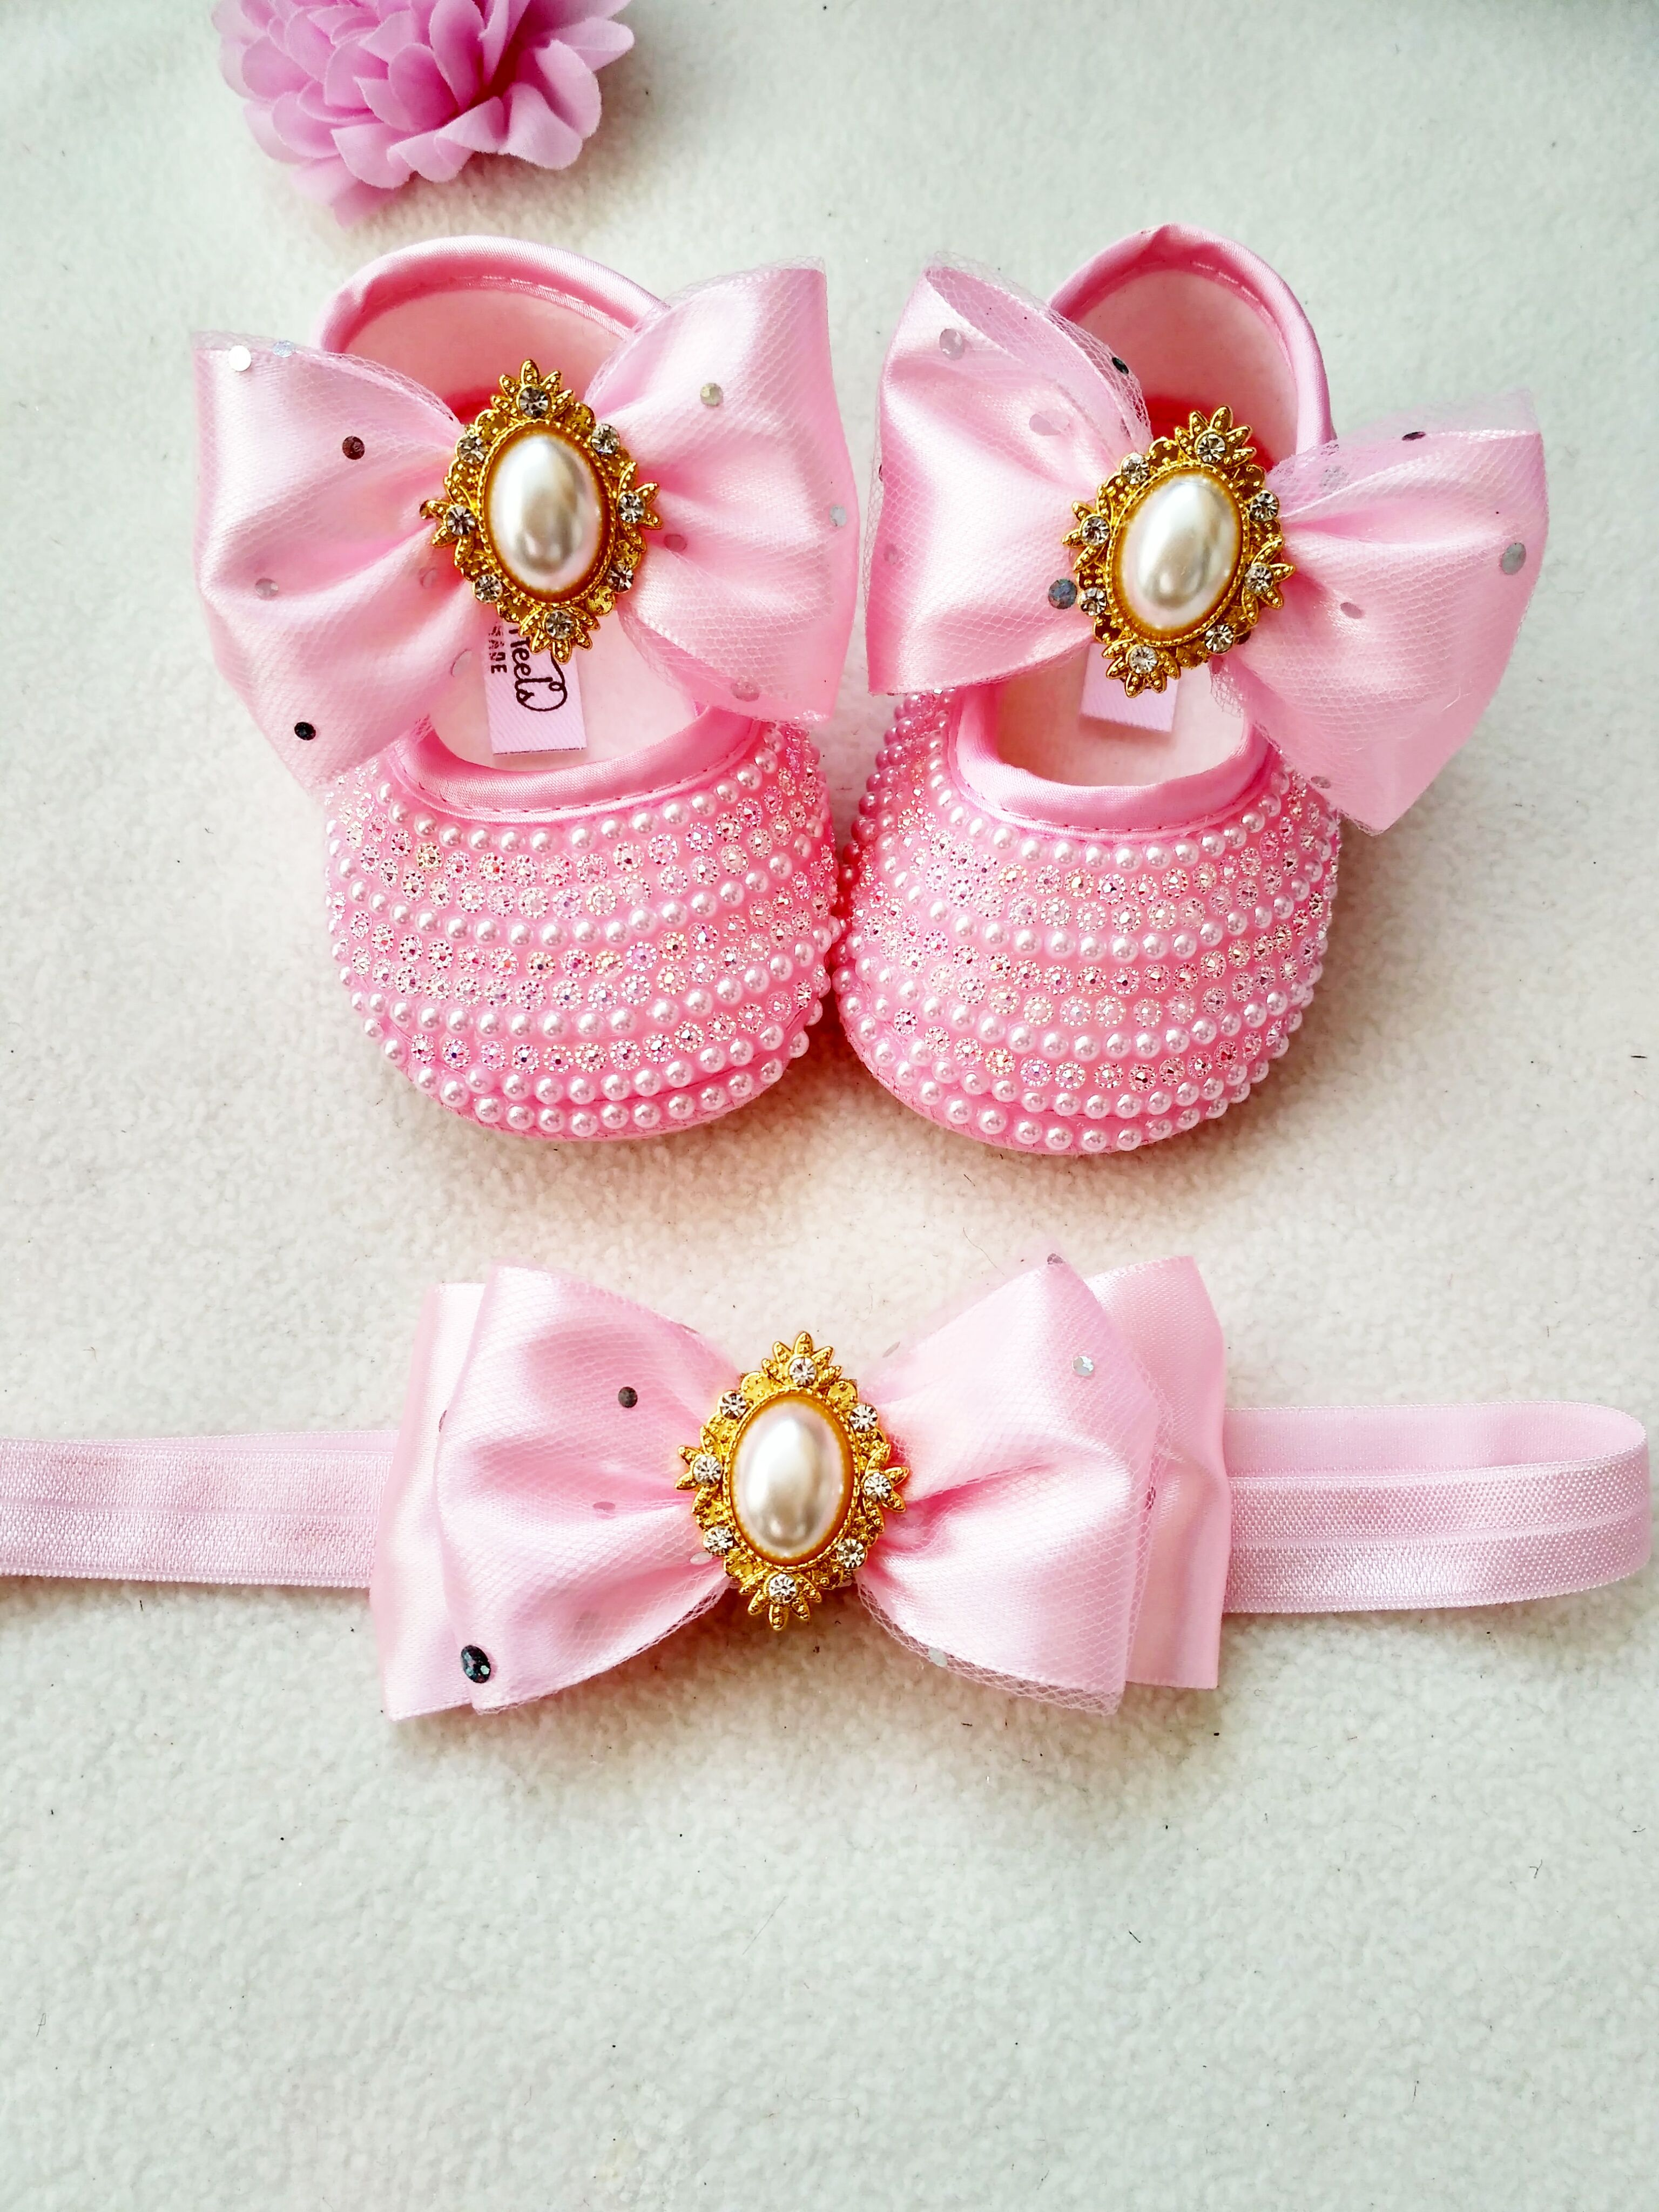 Pin on 1 st Birthday Baby Girl Shoes